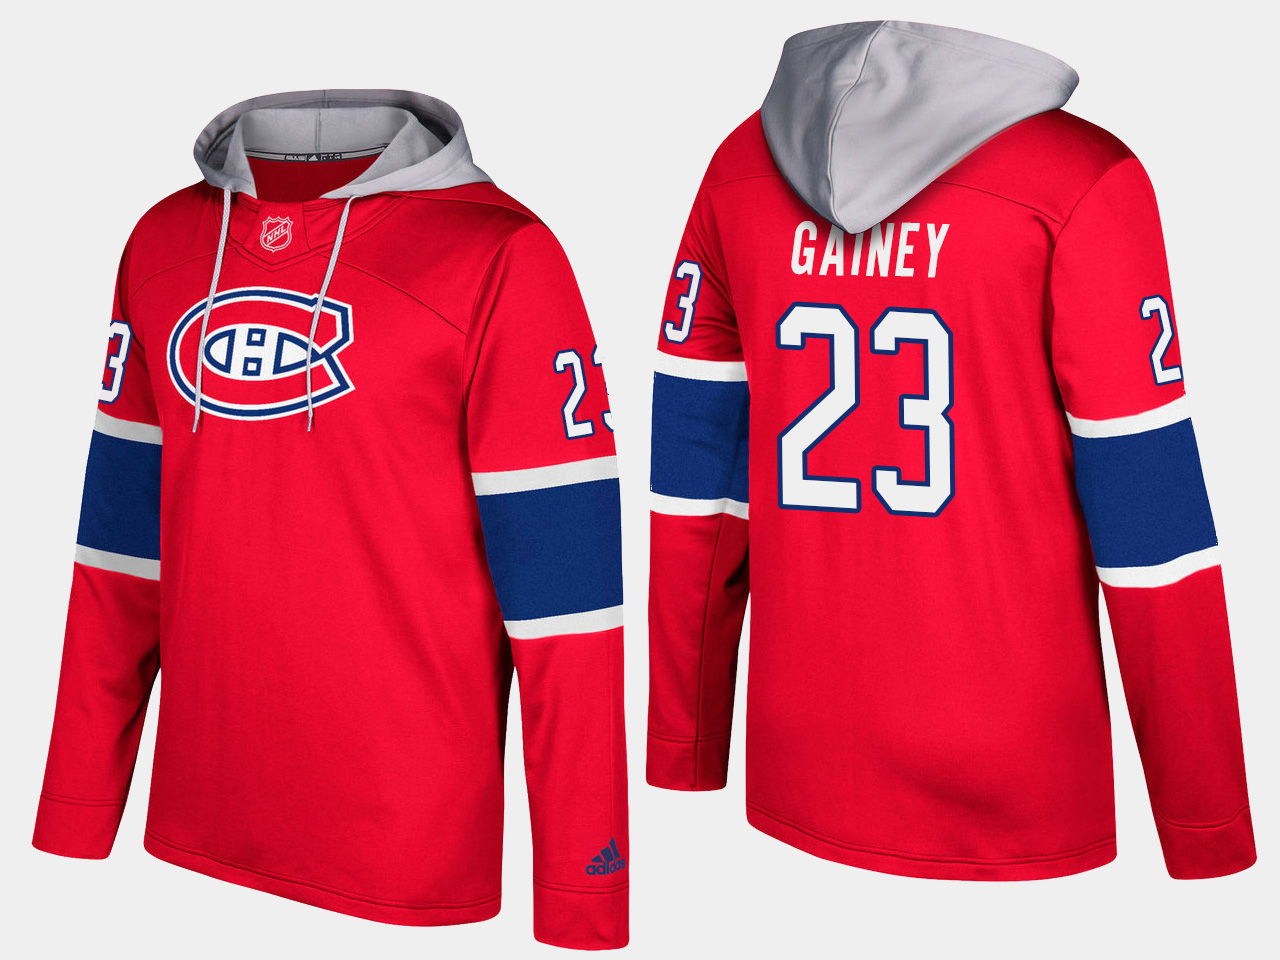 Canadiens #23 Bob Gainey Red Name And Number Hoodie